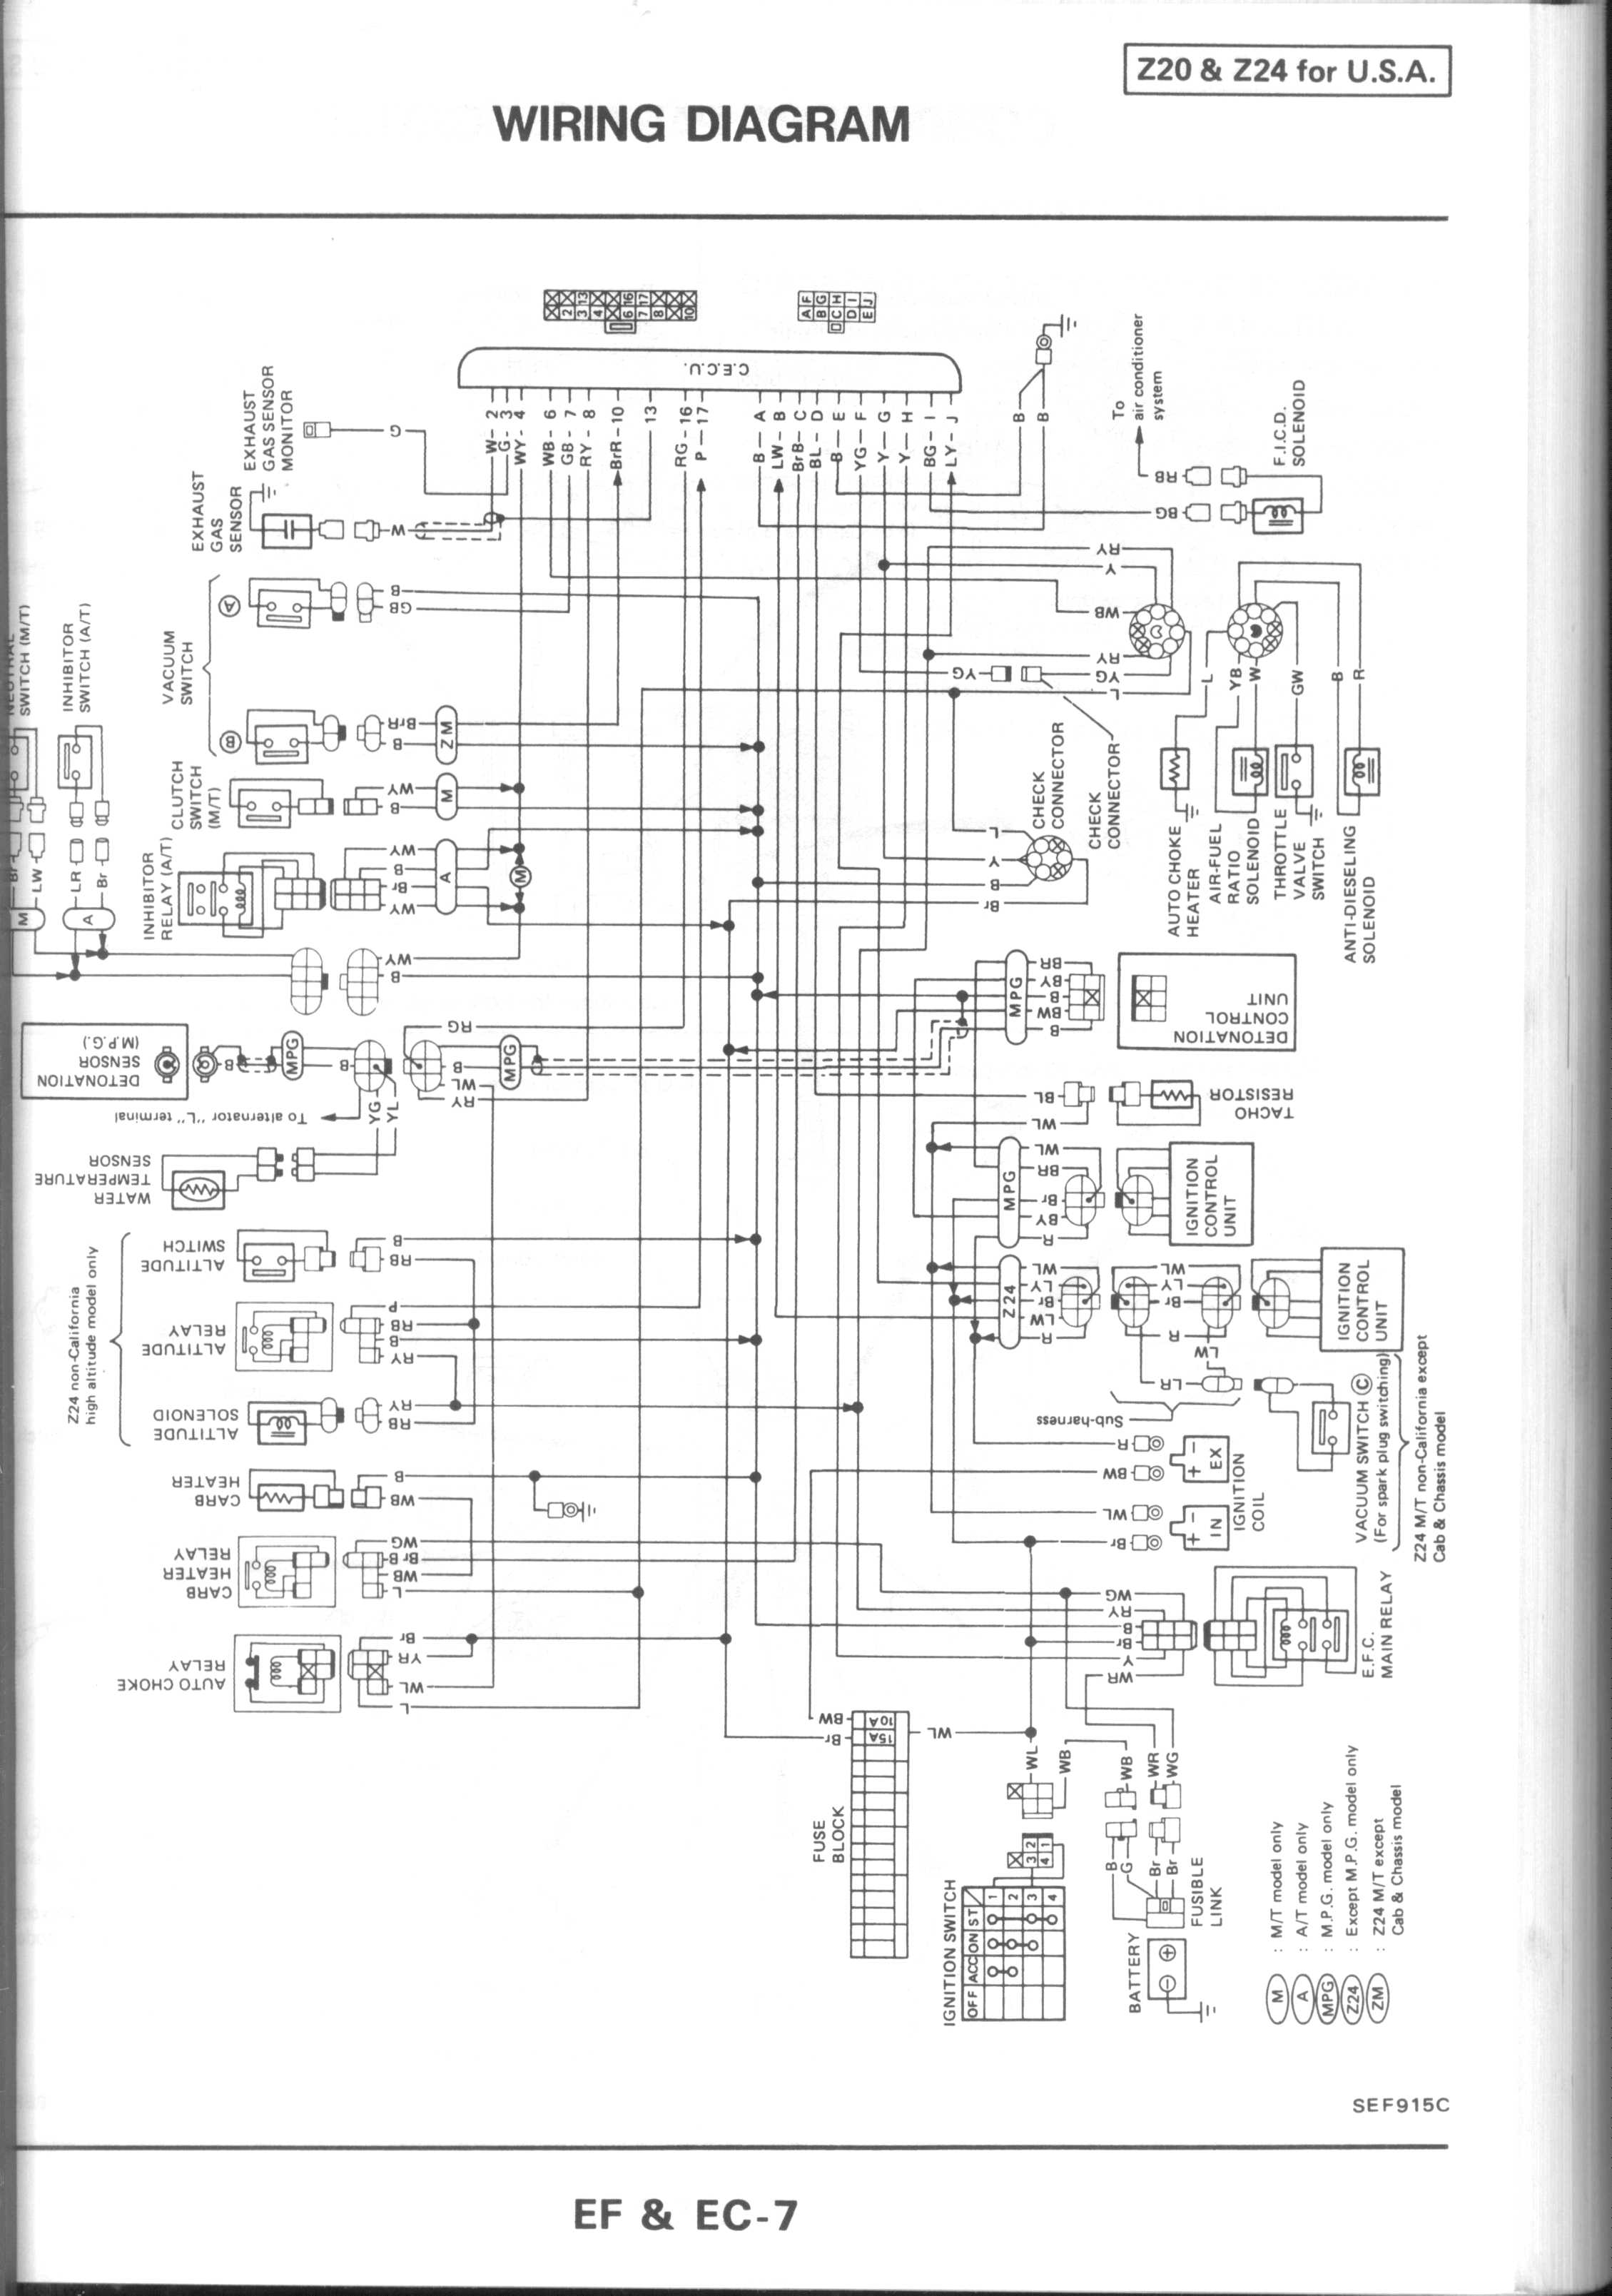 hight resolution of wiring diagram yamaha golf cart g19et yamaha g1 golf cart repair 720 z24 ecu wiring quality